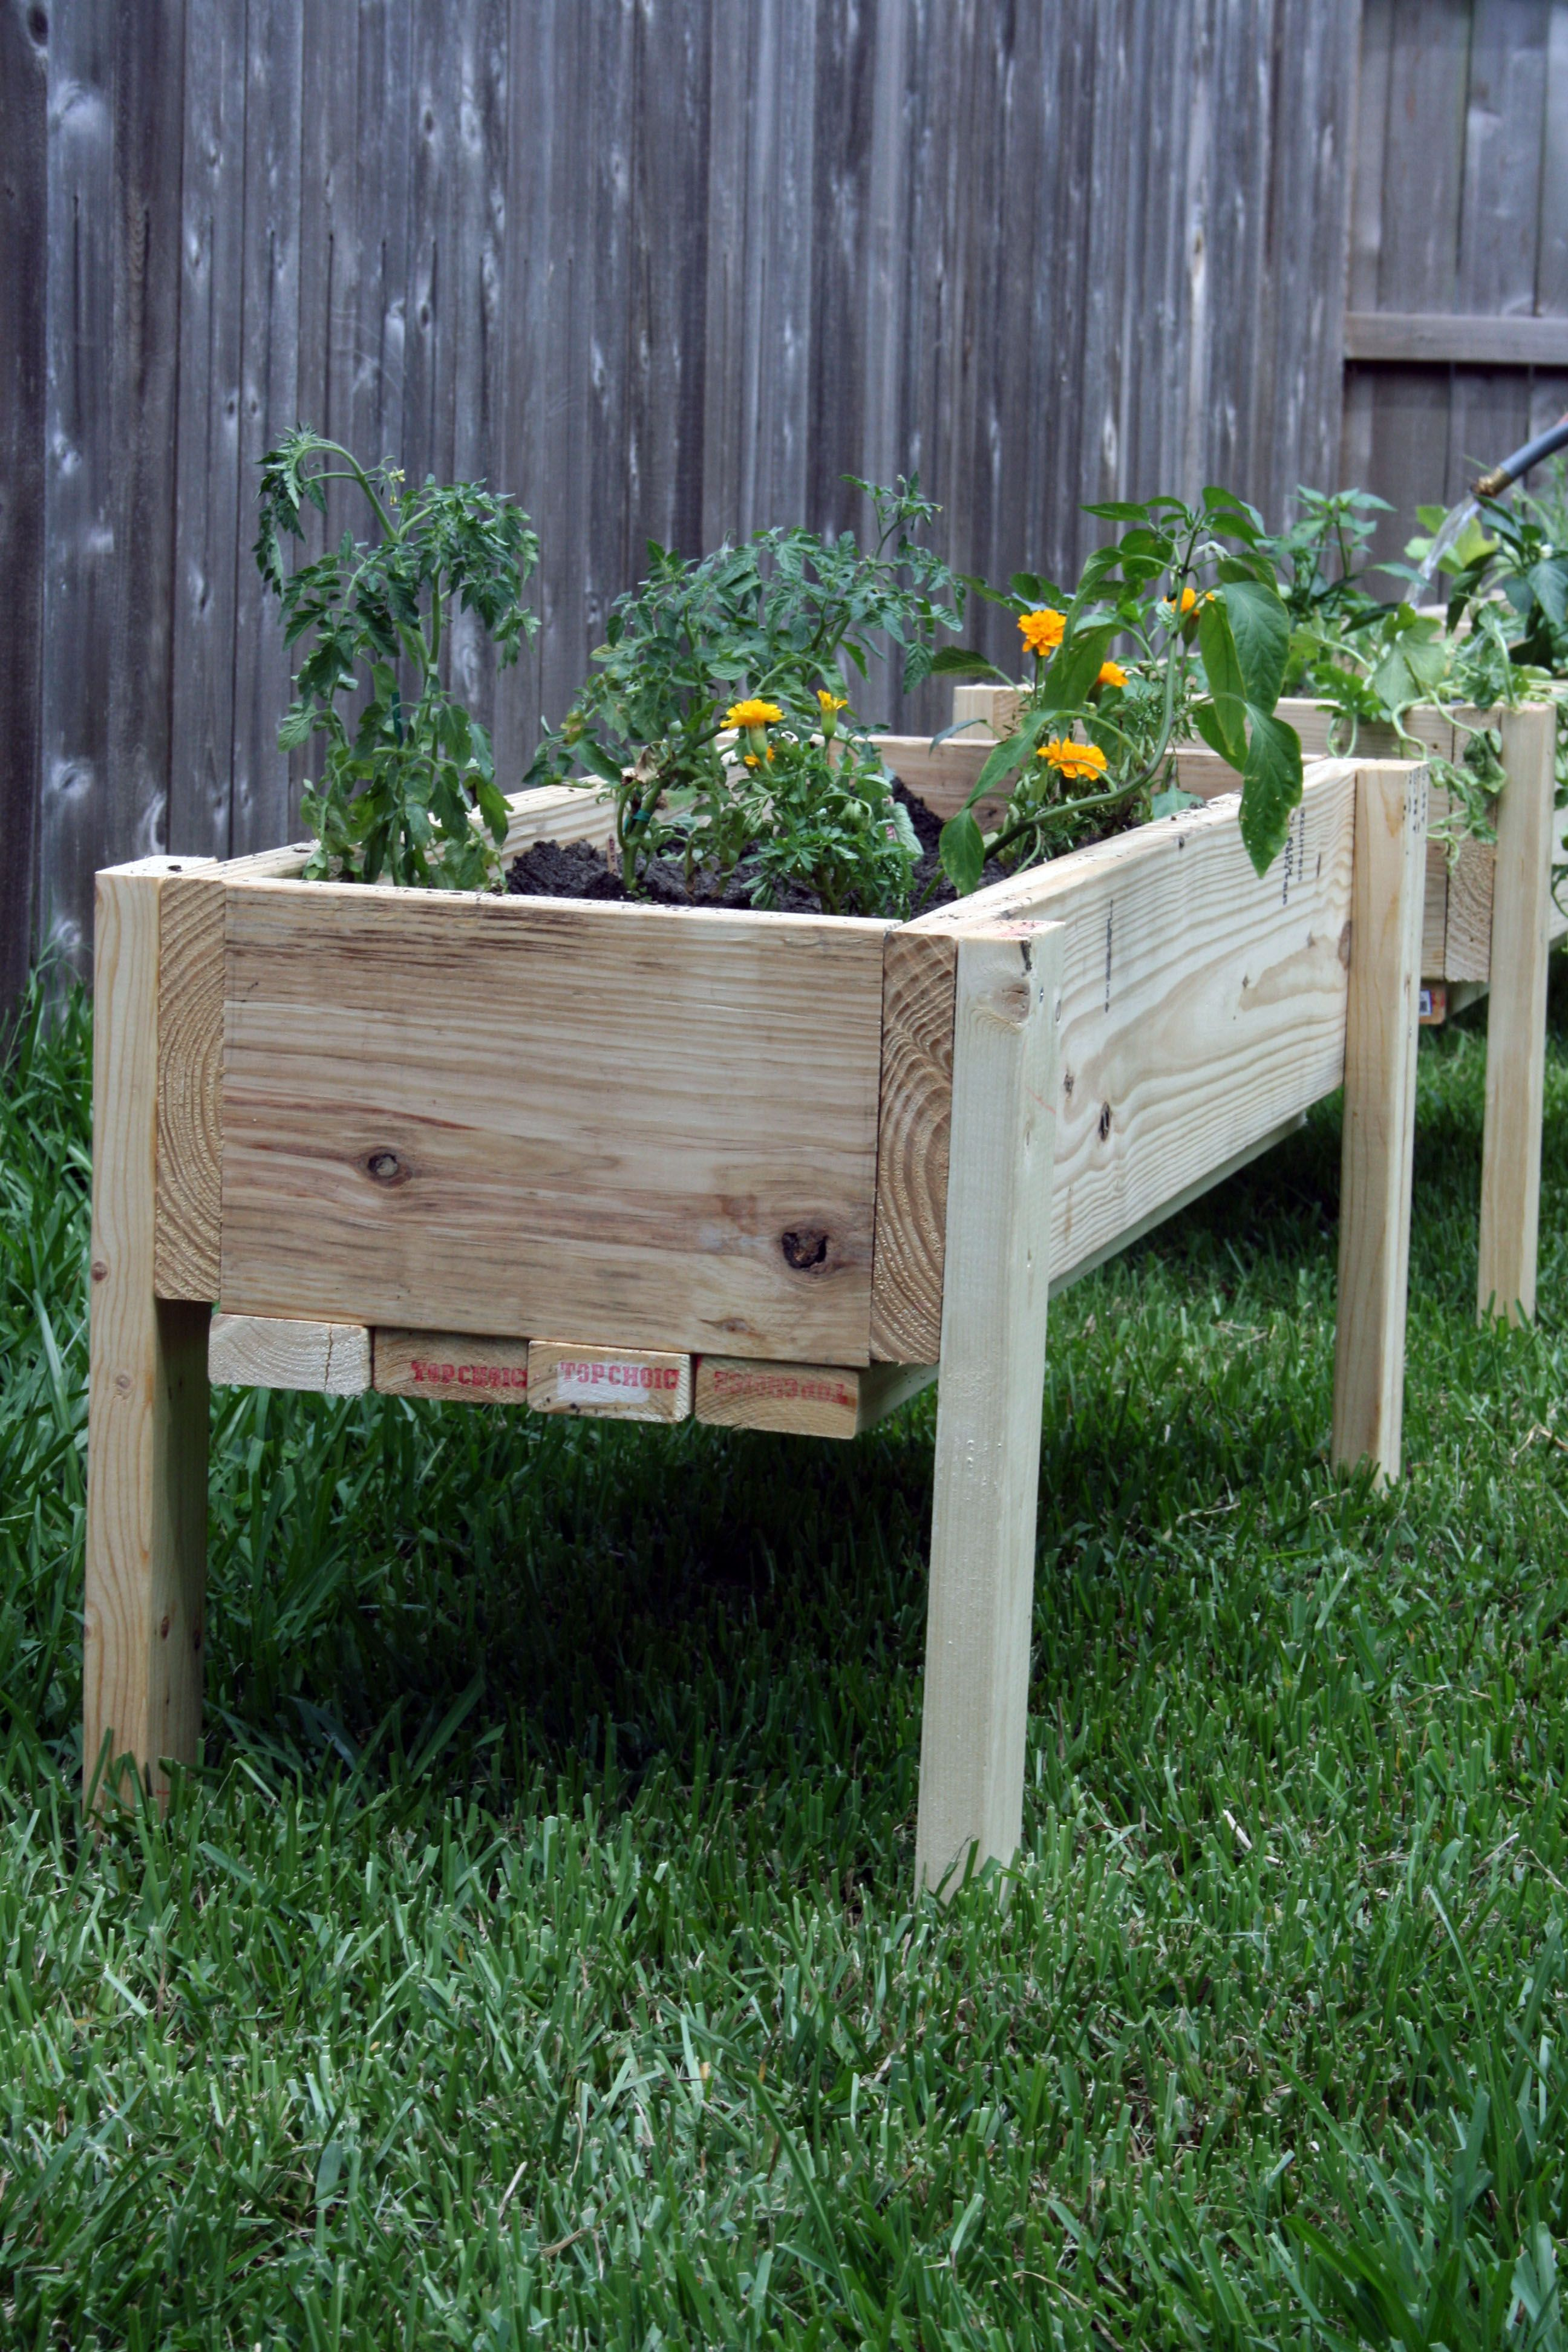 Elevated offground garden beds (with plans) Building a